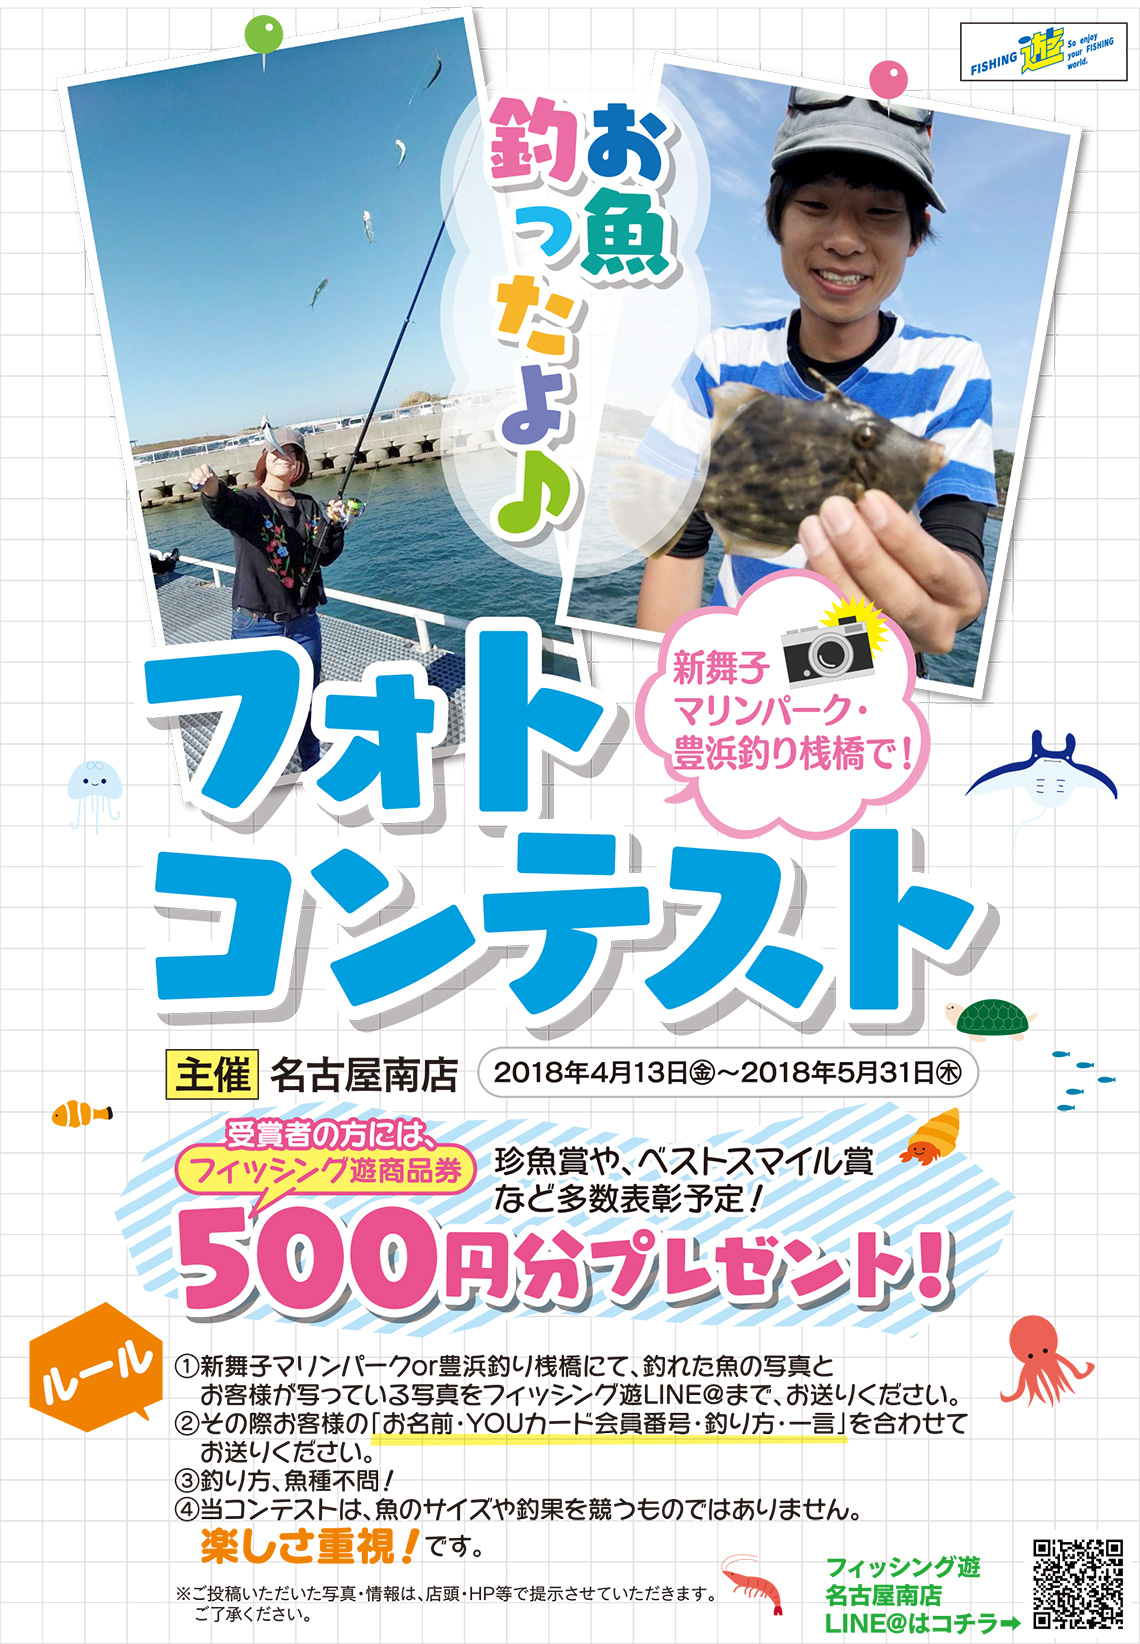 <a href=&quot;http://fishing-you.com/event/180413_0531minami&quot;>名古屋南店 フォトコンテスト</a>